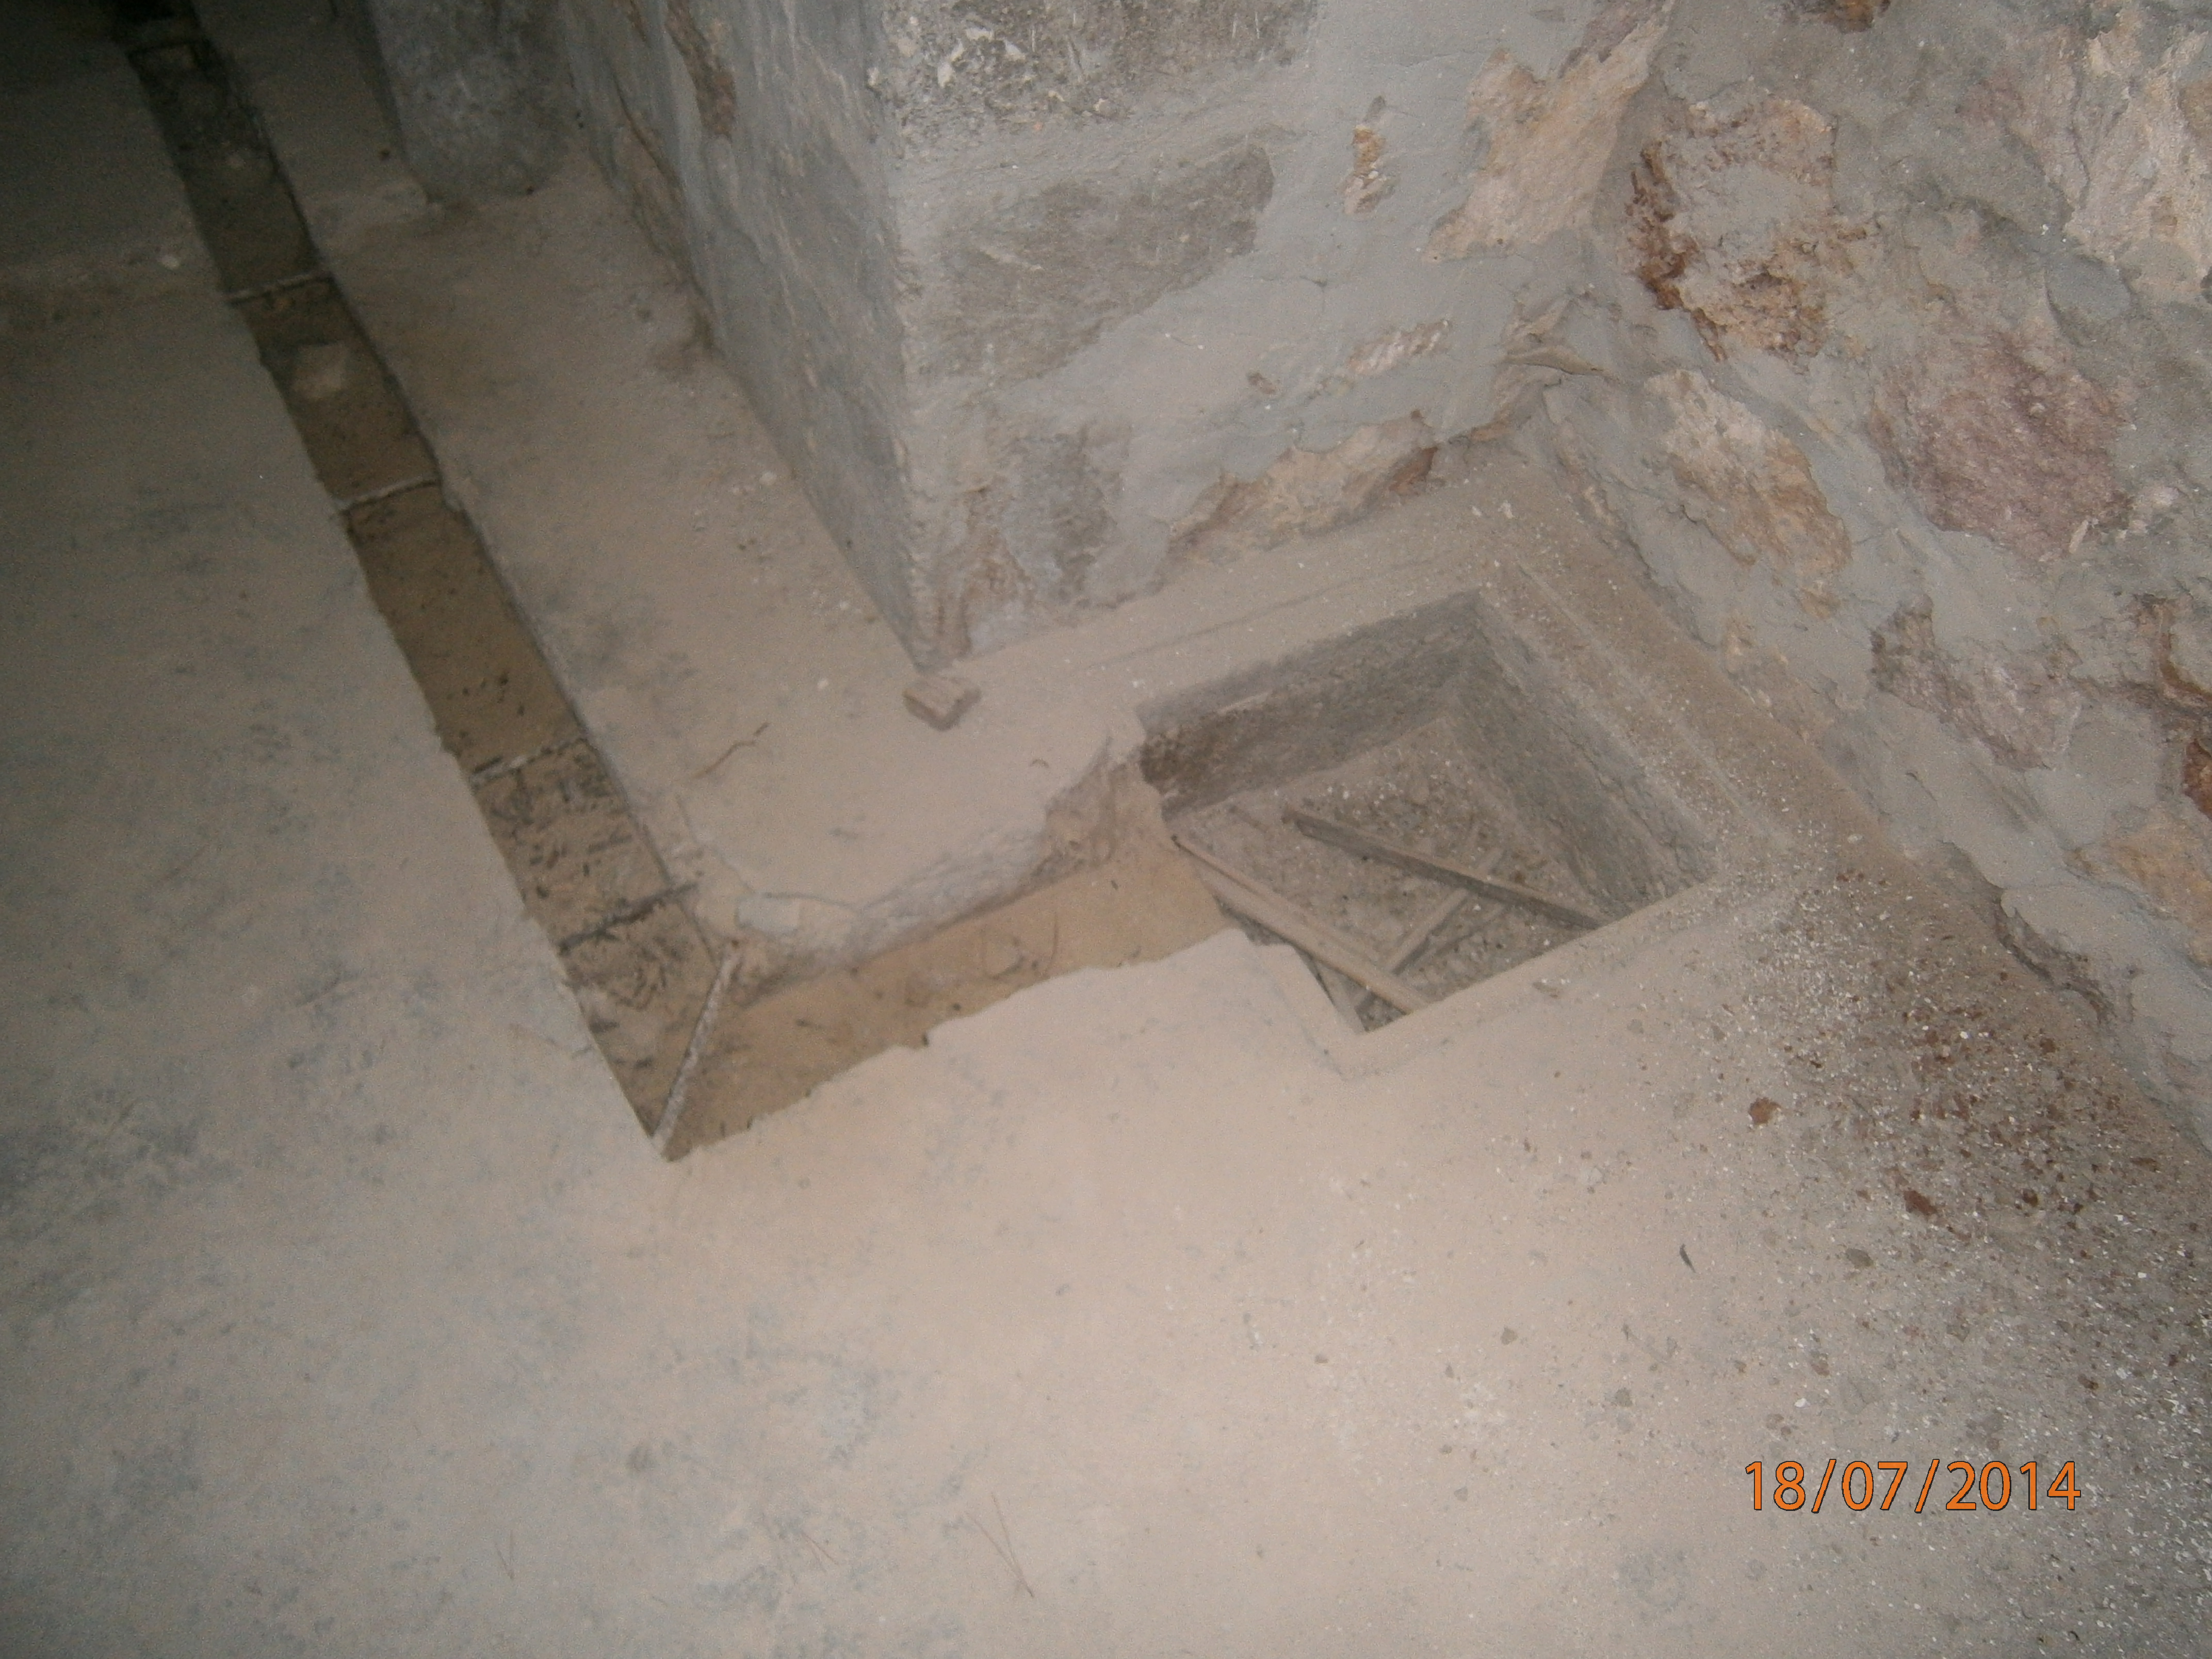 Part of the drainage system